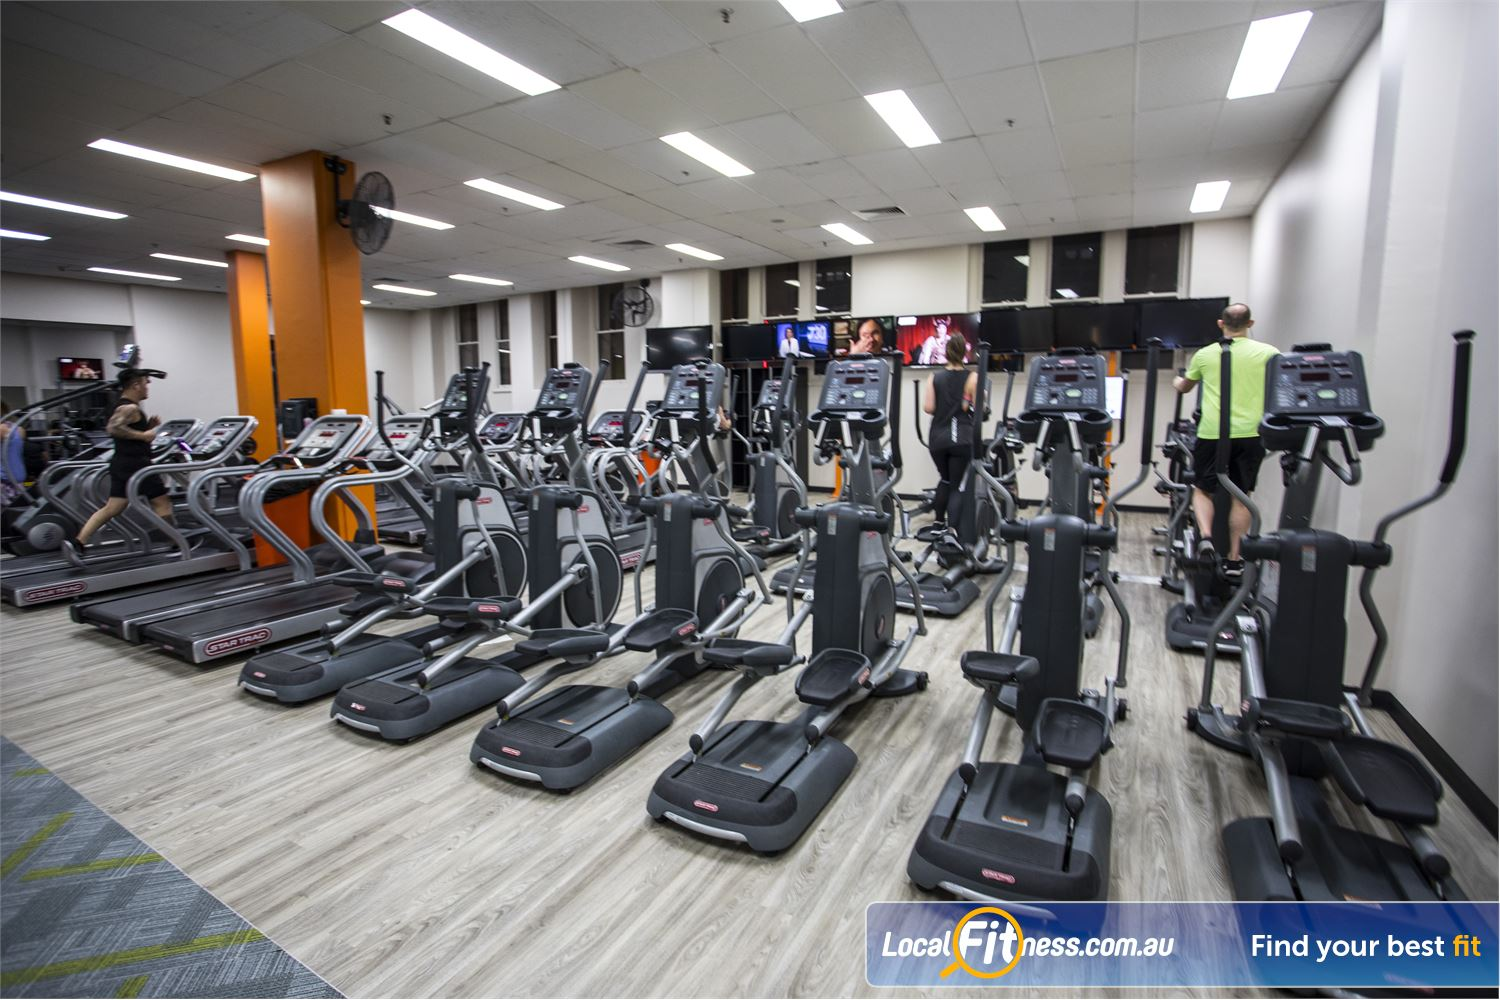 Fit n Fast Near Strawberry Hills A wide selection inc. treadmills, cross trainers, rowers and more.